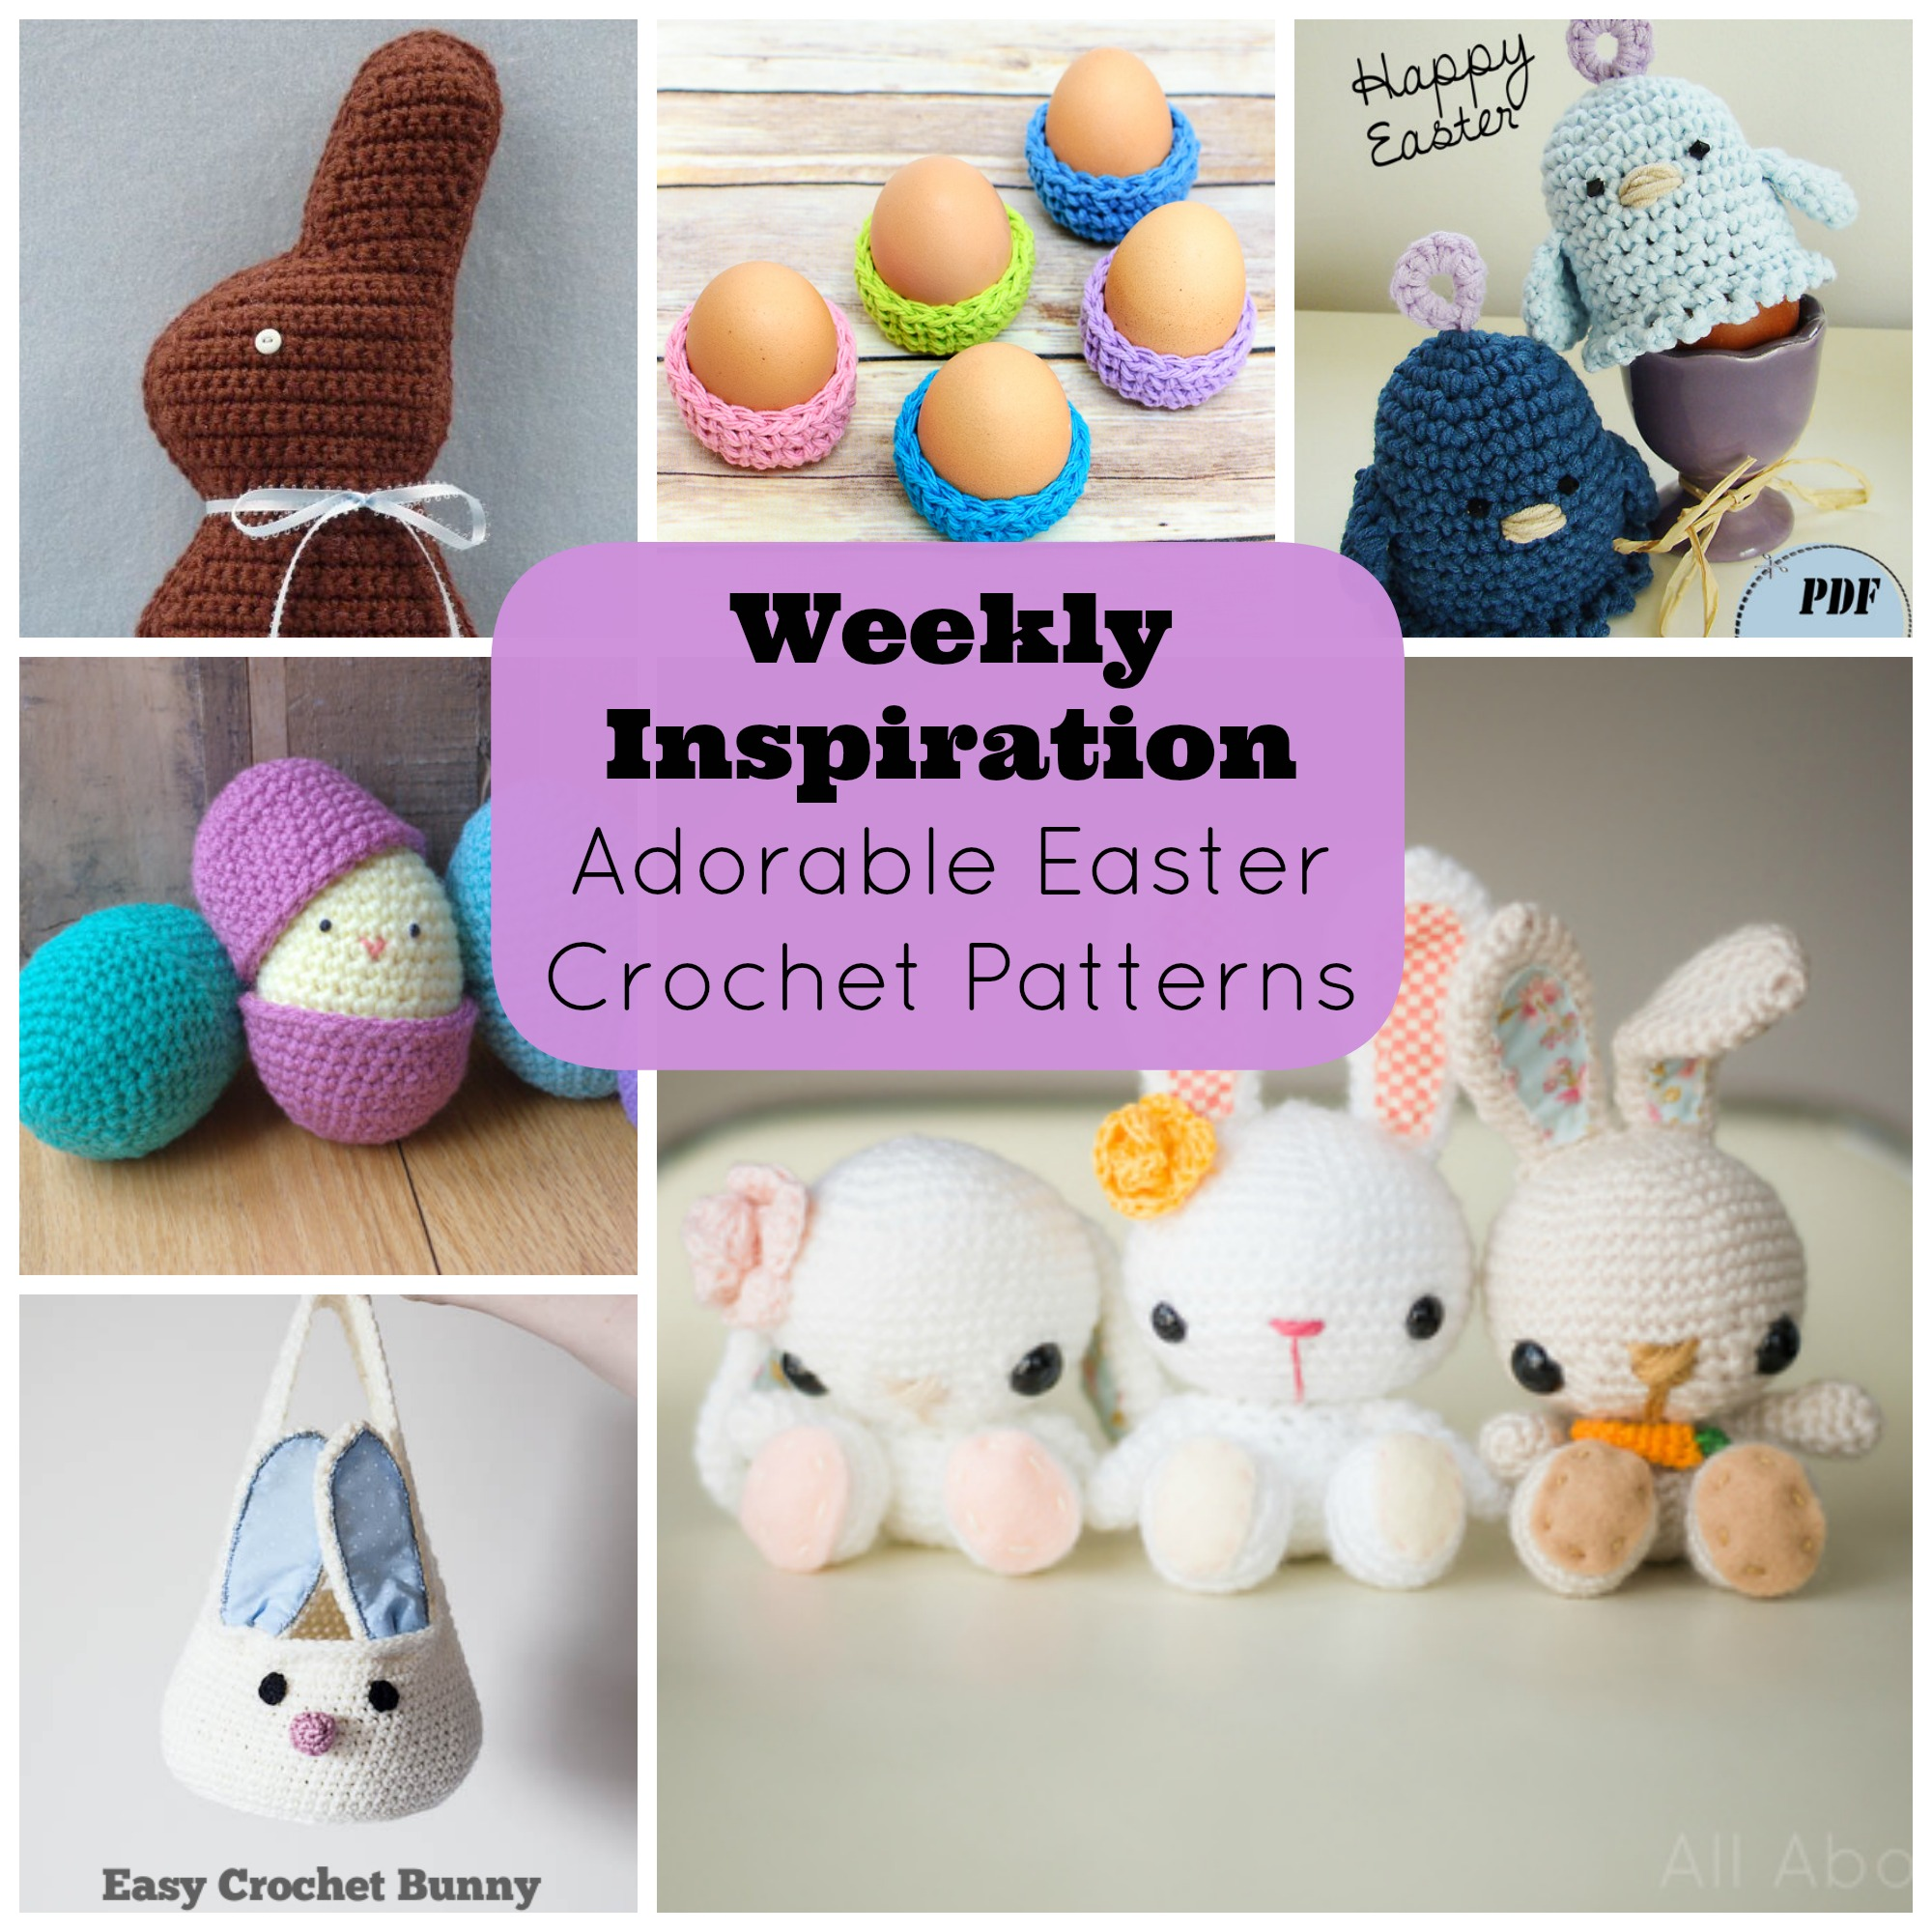 Weekly inspiration adorable easter crochet patterns perfect for weekly inspiration adorable easter crochet patterns perfect for easter baskets sew creative blogsew creative blog negle Images